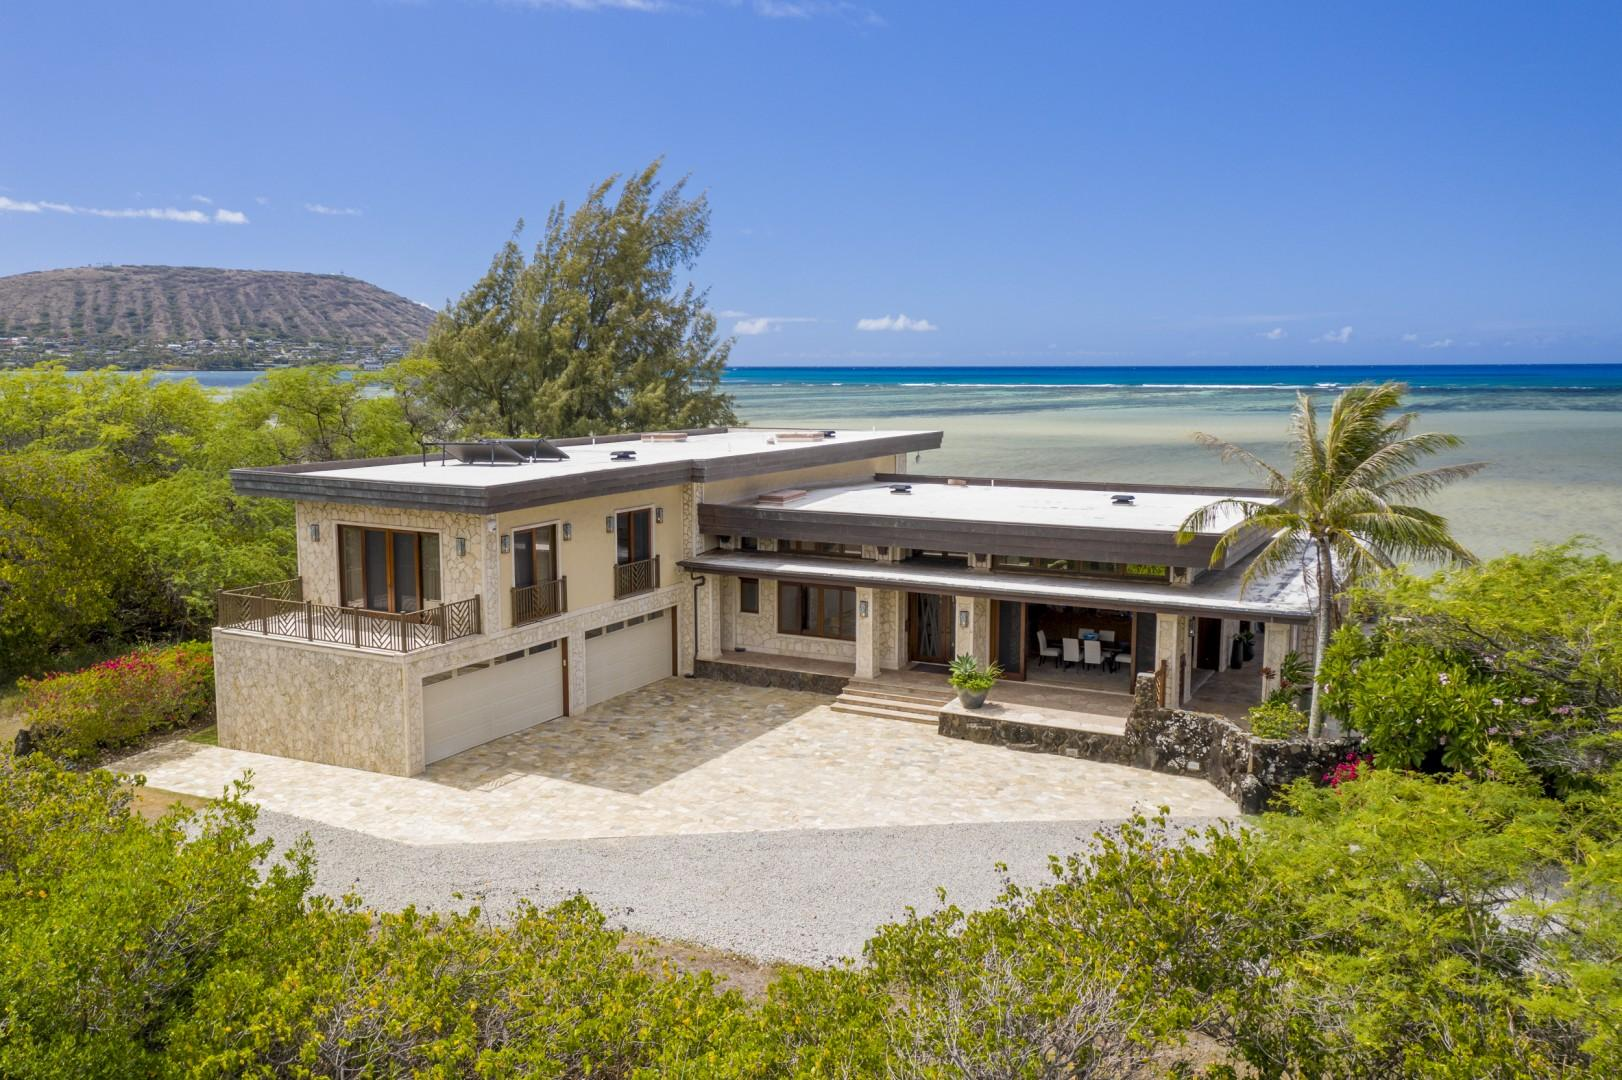 Paiko Lagoon beachfront estate with private driveway and 4-car garage